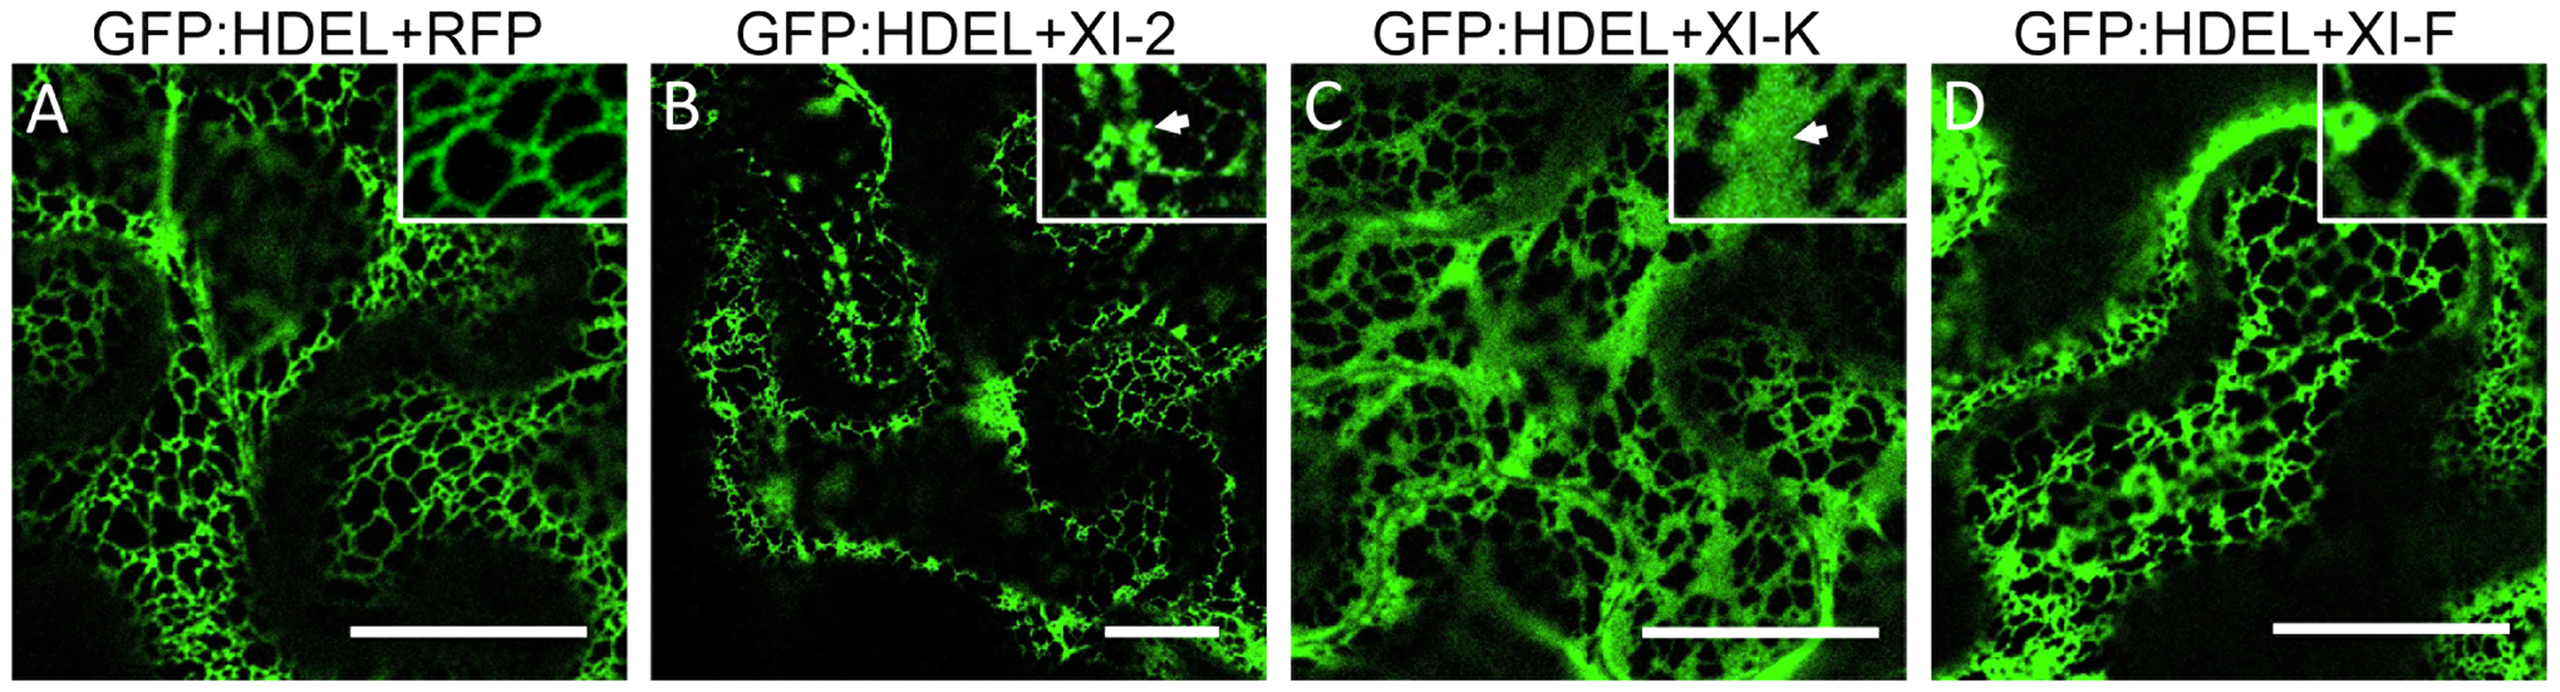 Effect of specific myosin tail expression on ER structure.